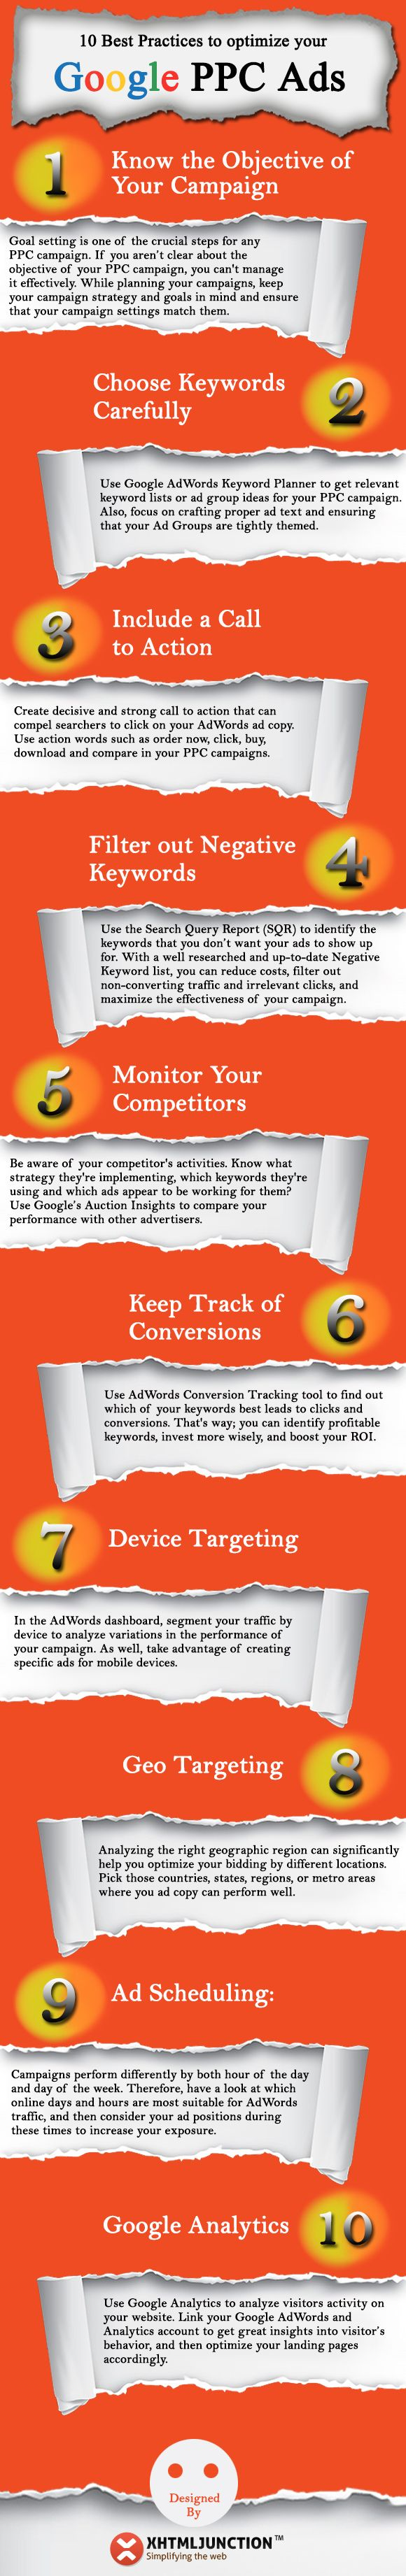 10 Tips & Best Practices to use when running a Google Adwords campaign! #PPCTips #Google #Adwords